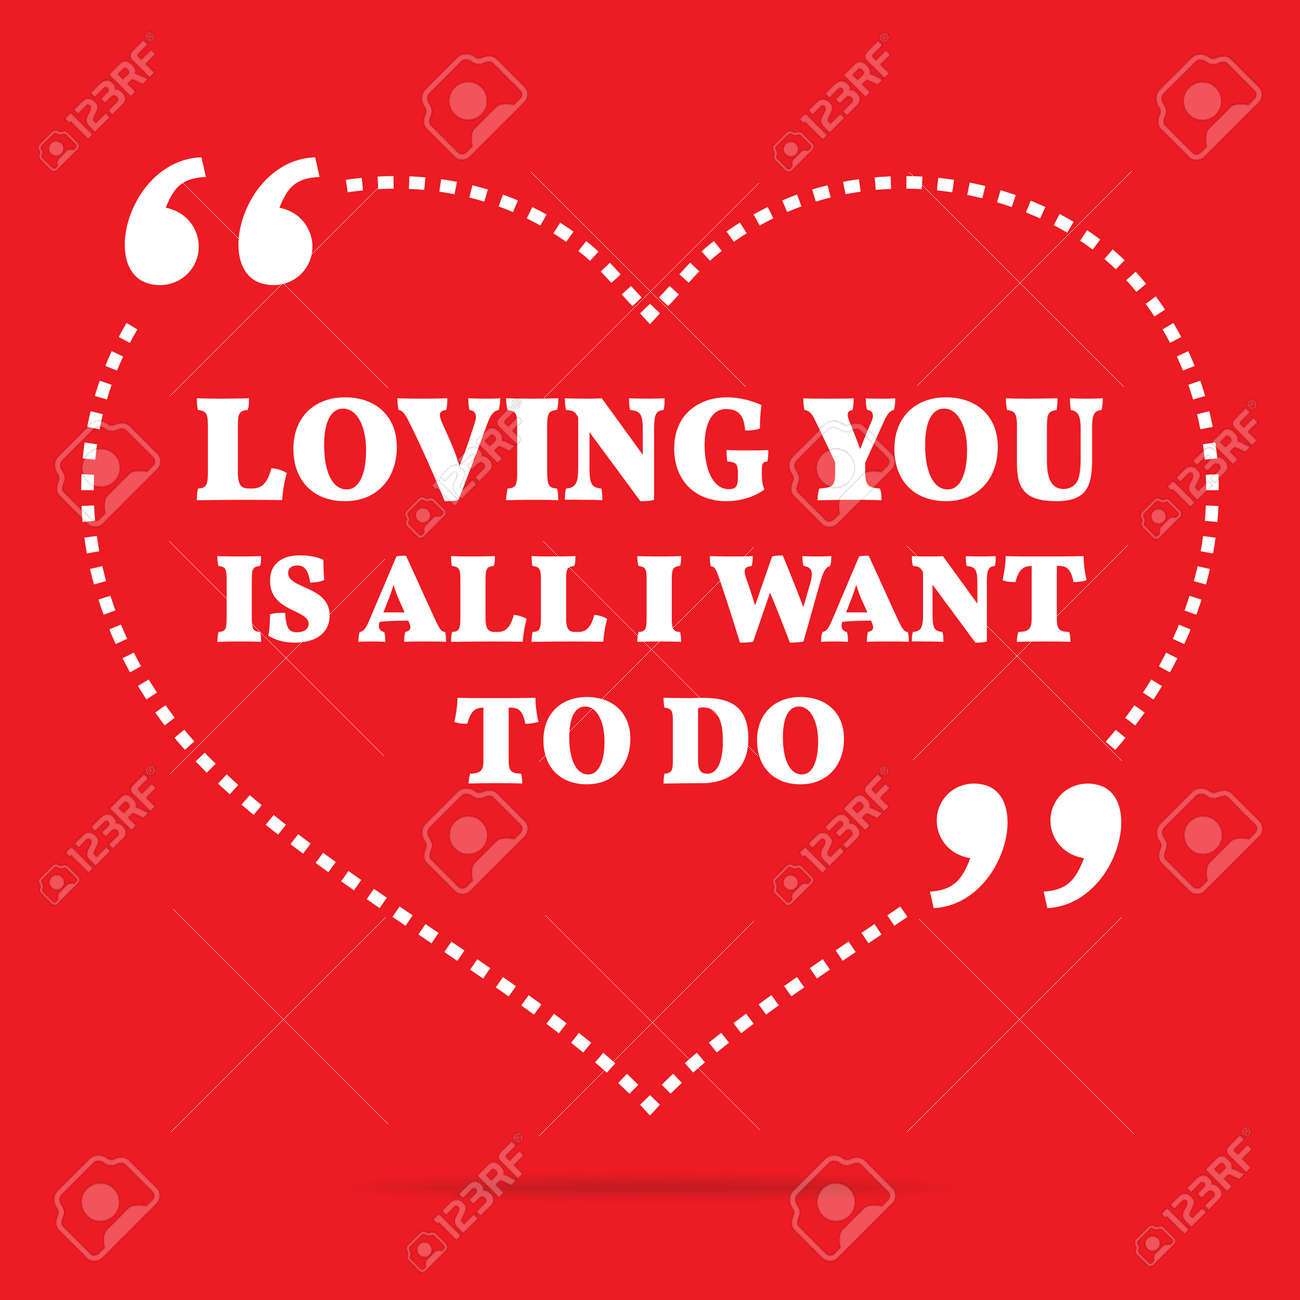 Inspirational Love Quote Loving You Is All I Want To Do Simple Royalty Free Cliparts Vectors And Stock Illustration Image 51266322